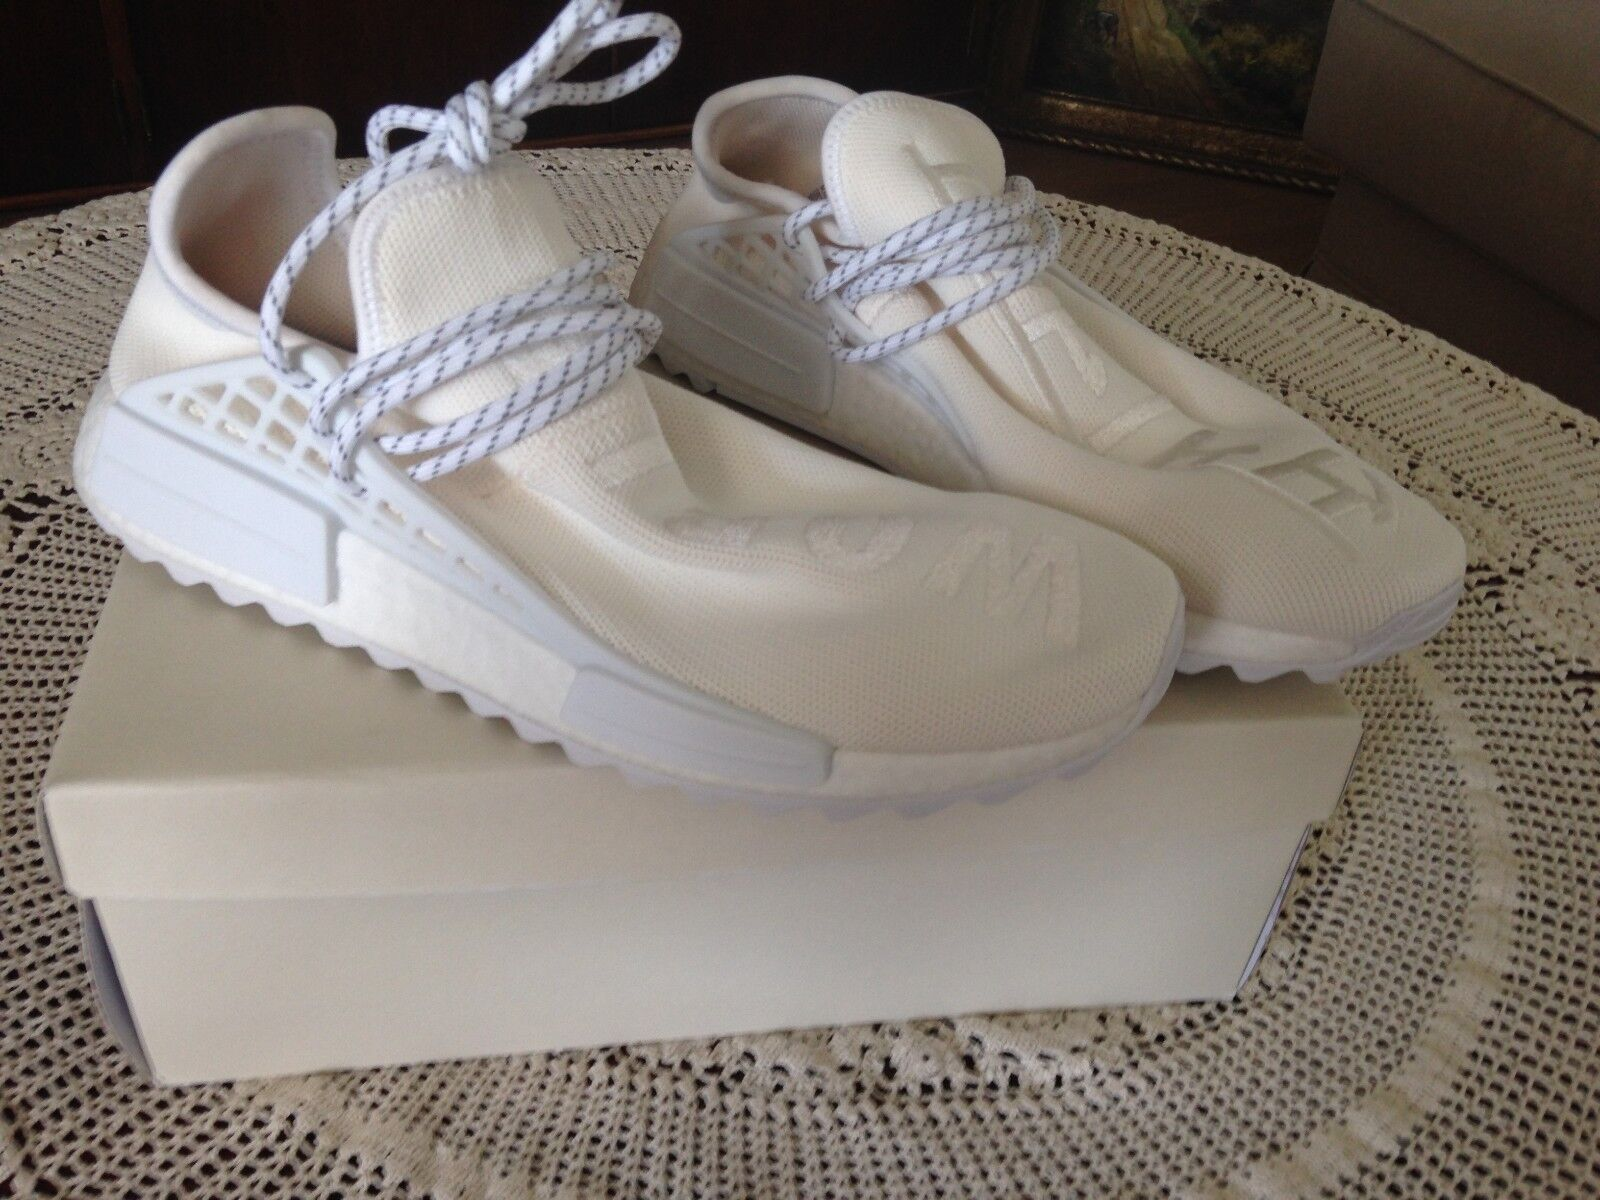 ADIDAS X Pharrell Williams HU NMD Blank Canvas UE 44 2 3 US 10.5 ac7031